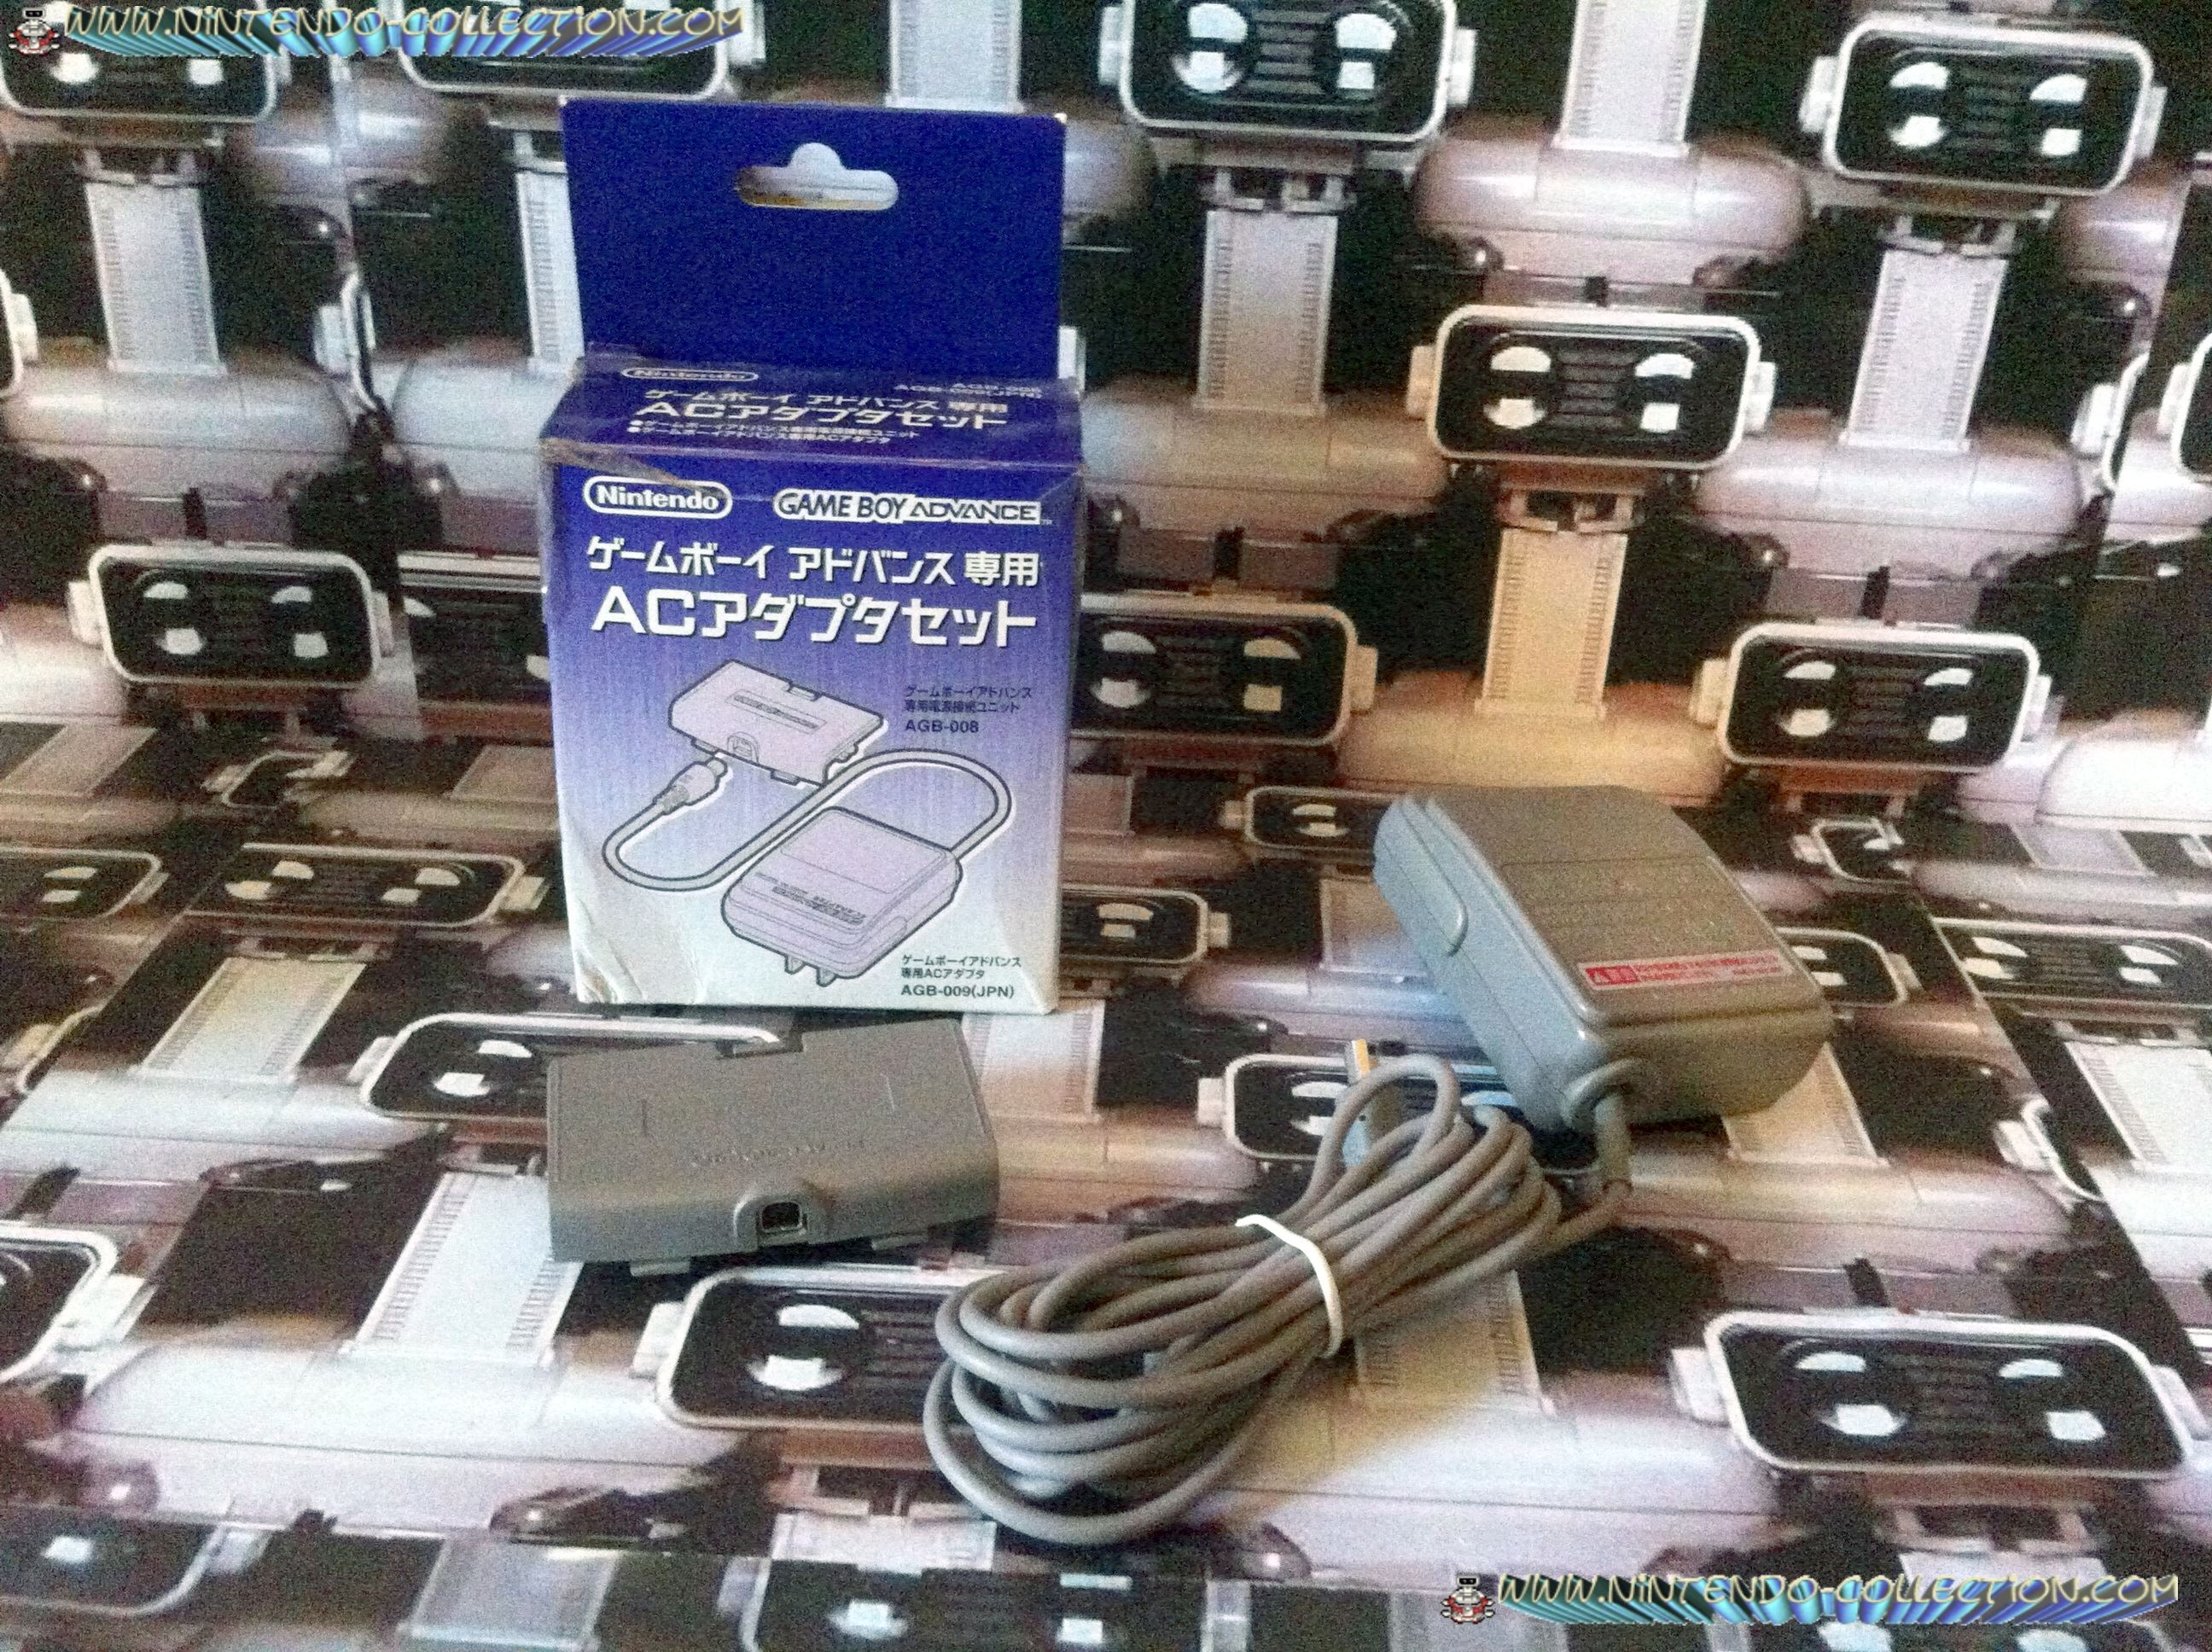 www.nintendo-collection.com - Gameboy Advance SP Accessory Accessoire batterie Battery Japan